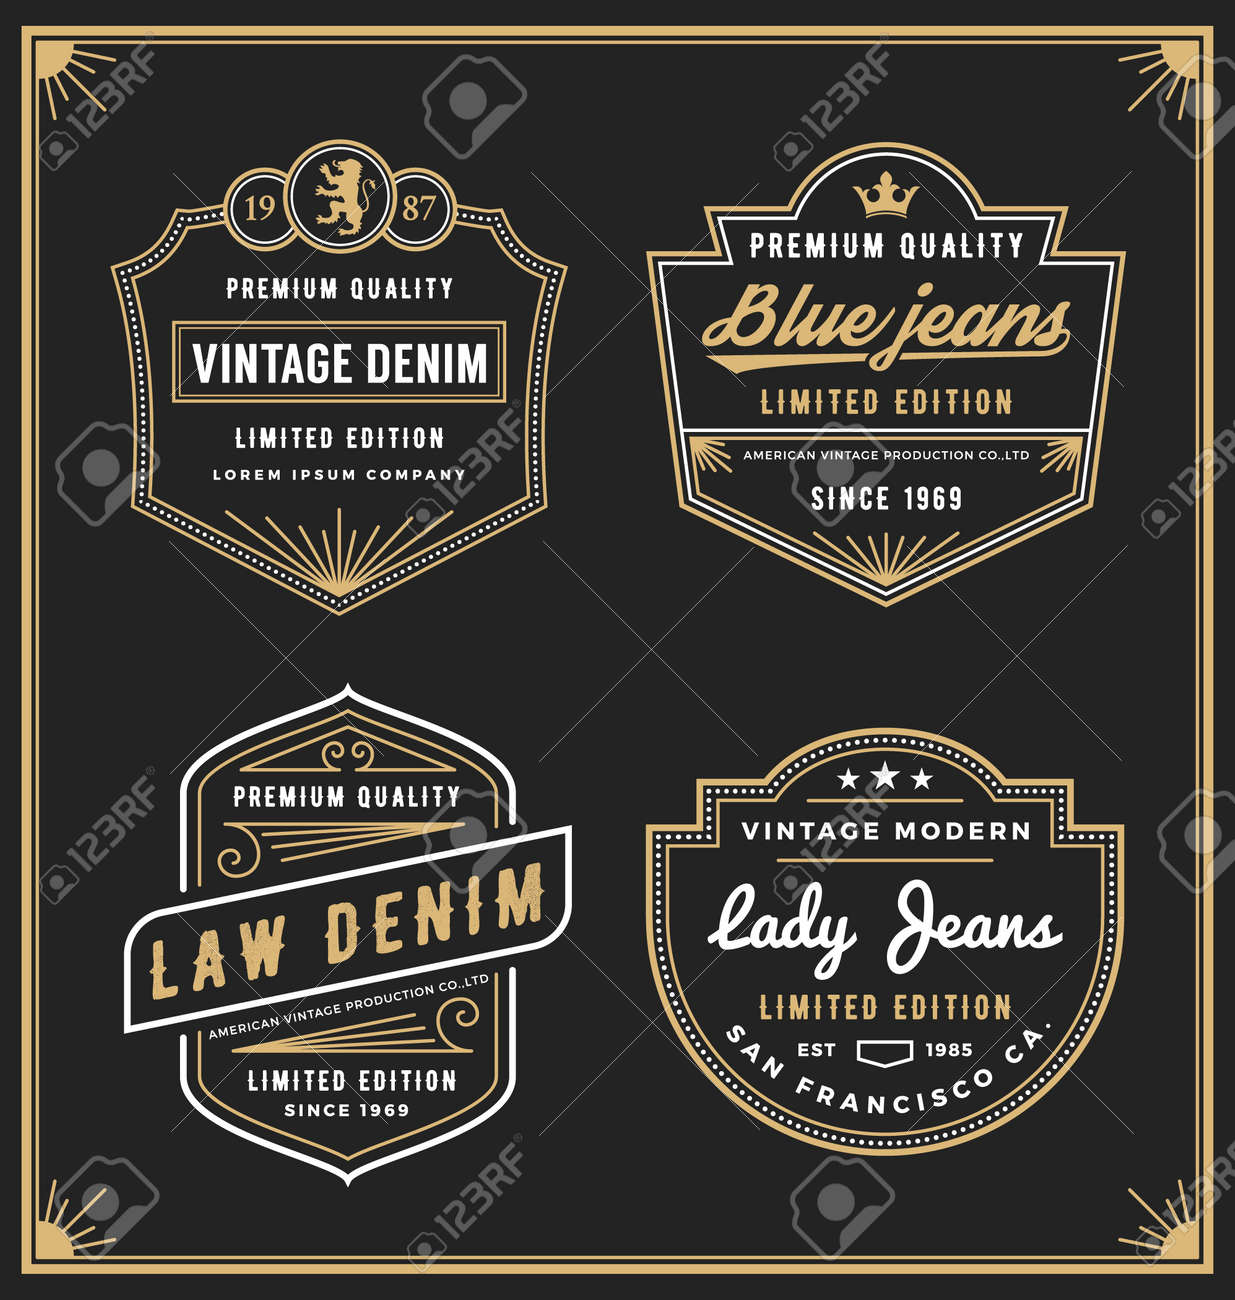 Vintage denim jeans frame for your business. Use for label, tags, banner, screen and printing media. Vector illustration - 50070781